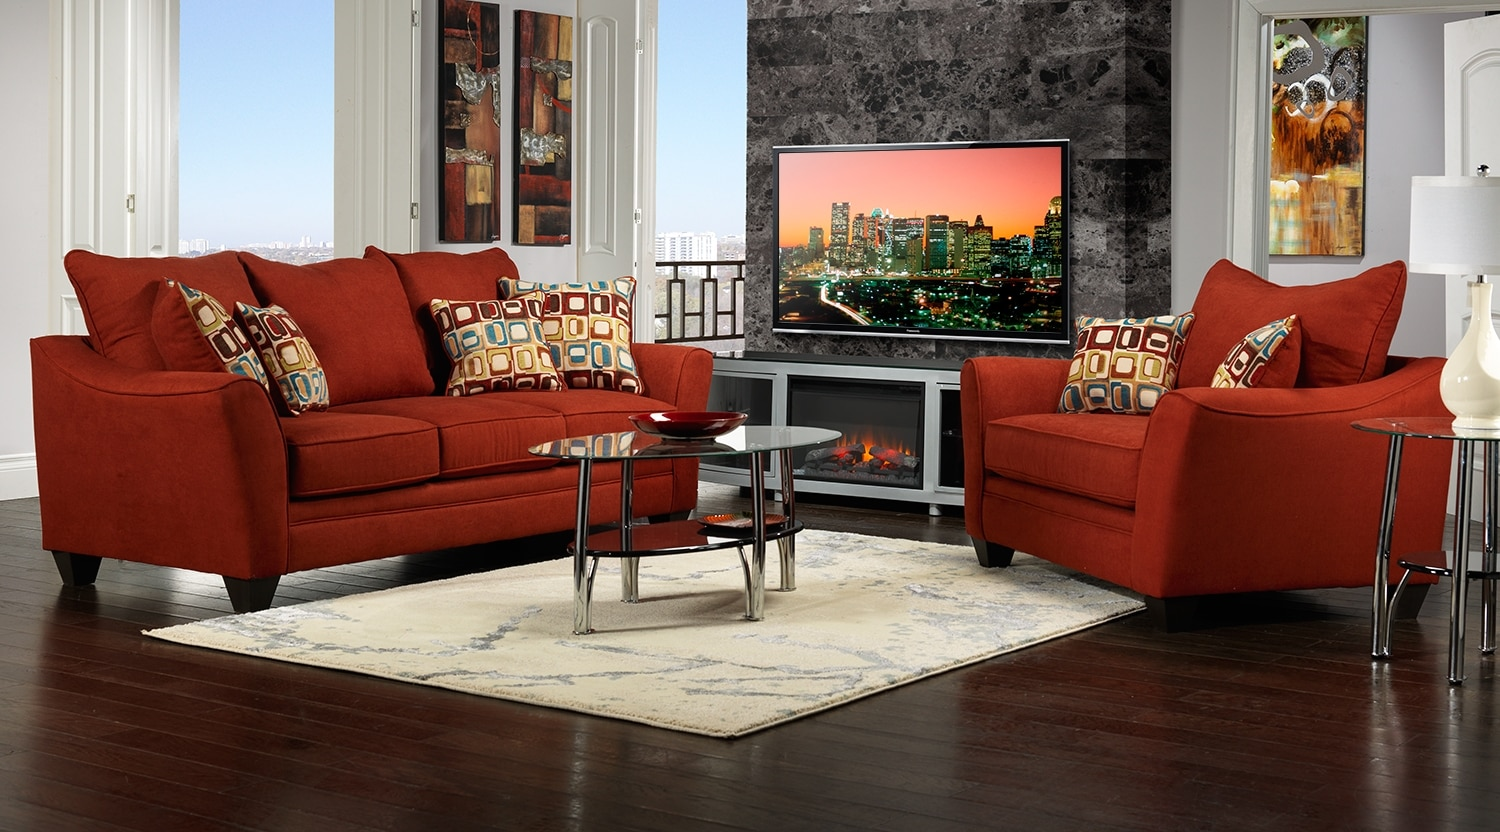 Leons Living Room Sets Zion Star